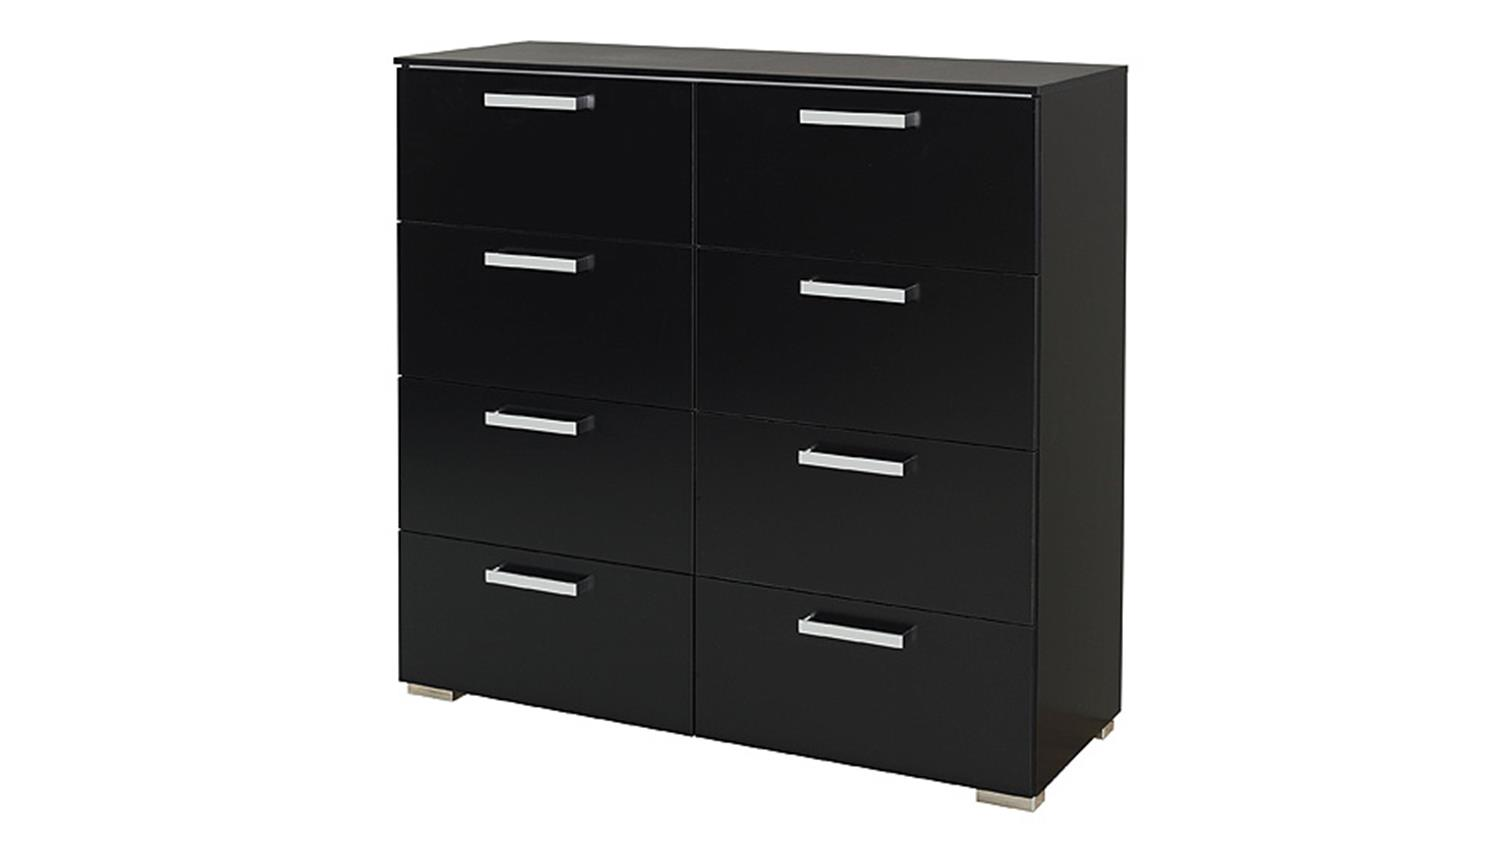 kommode 6 schubkastenkommode calero in schwarz und chrom. Black Bedroom Furniture Sets. Home Design Ideas